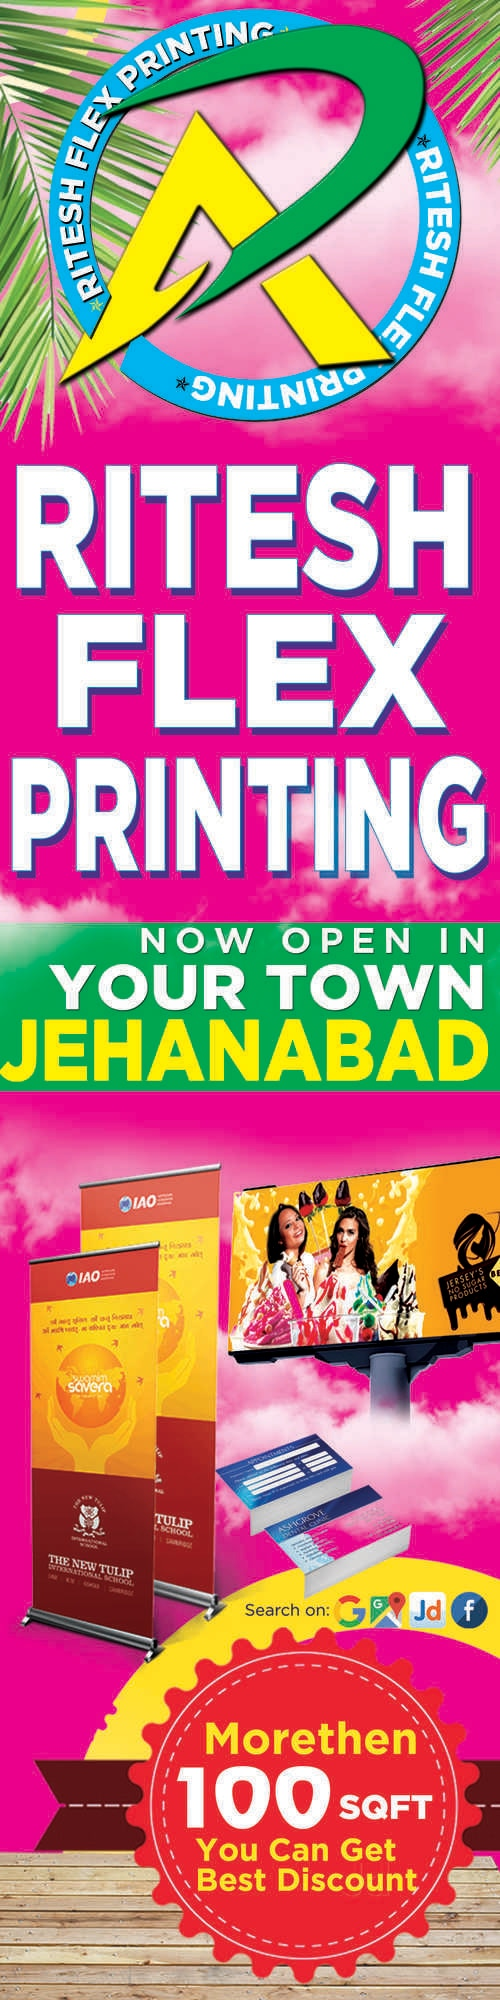 Top Flex Printing in Jehanabad - Best Flex Banner Printing